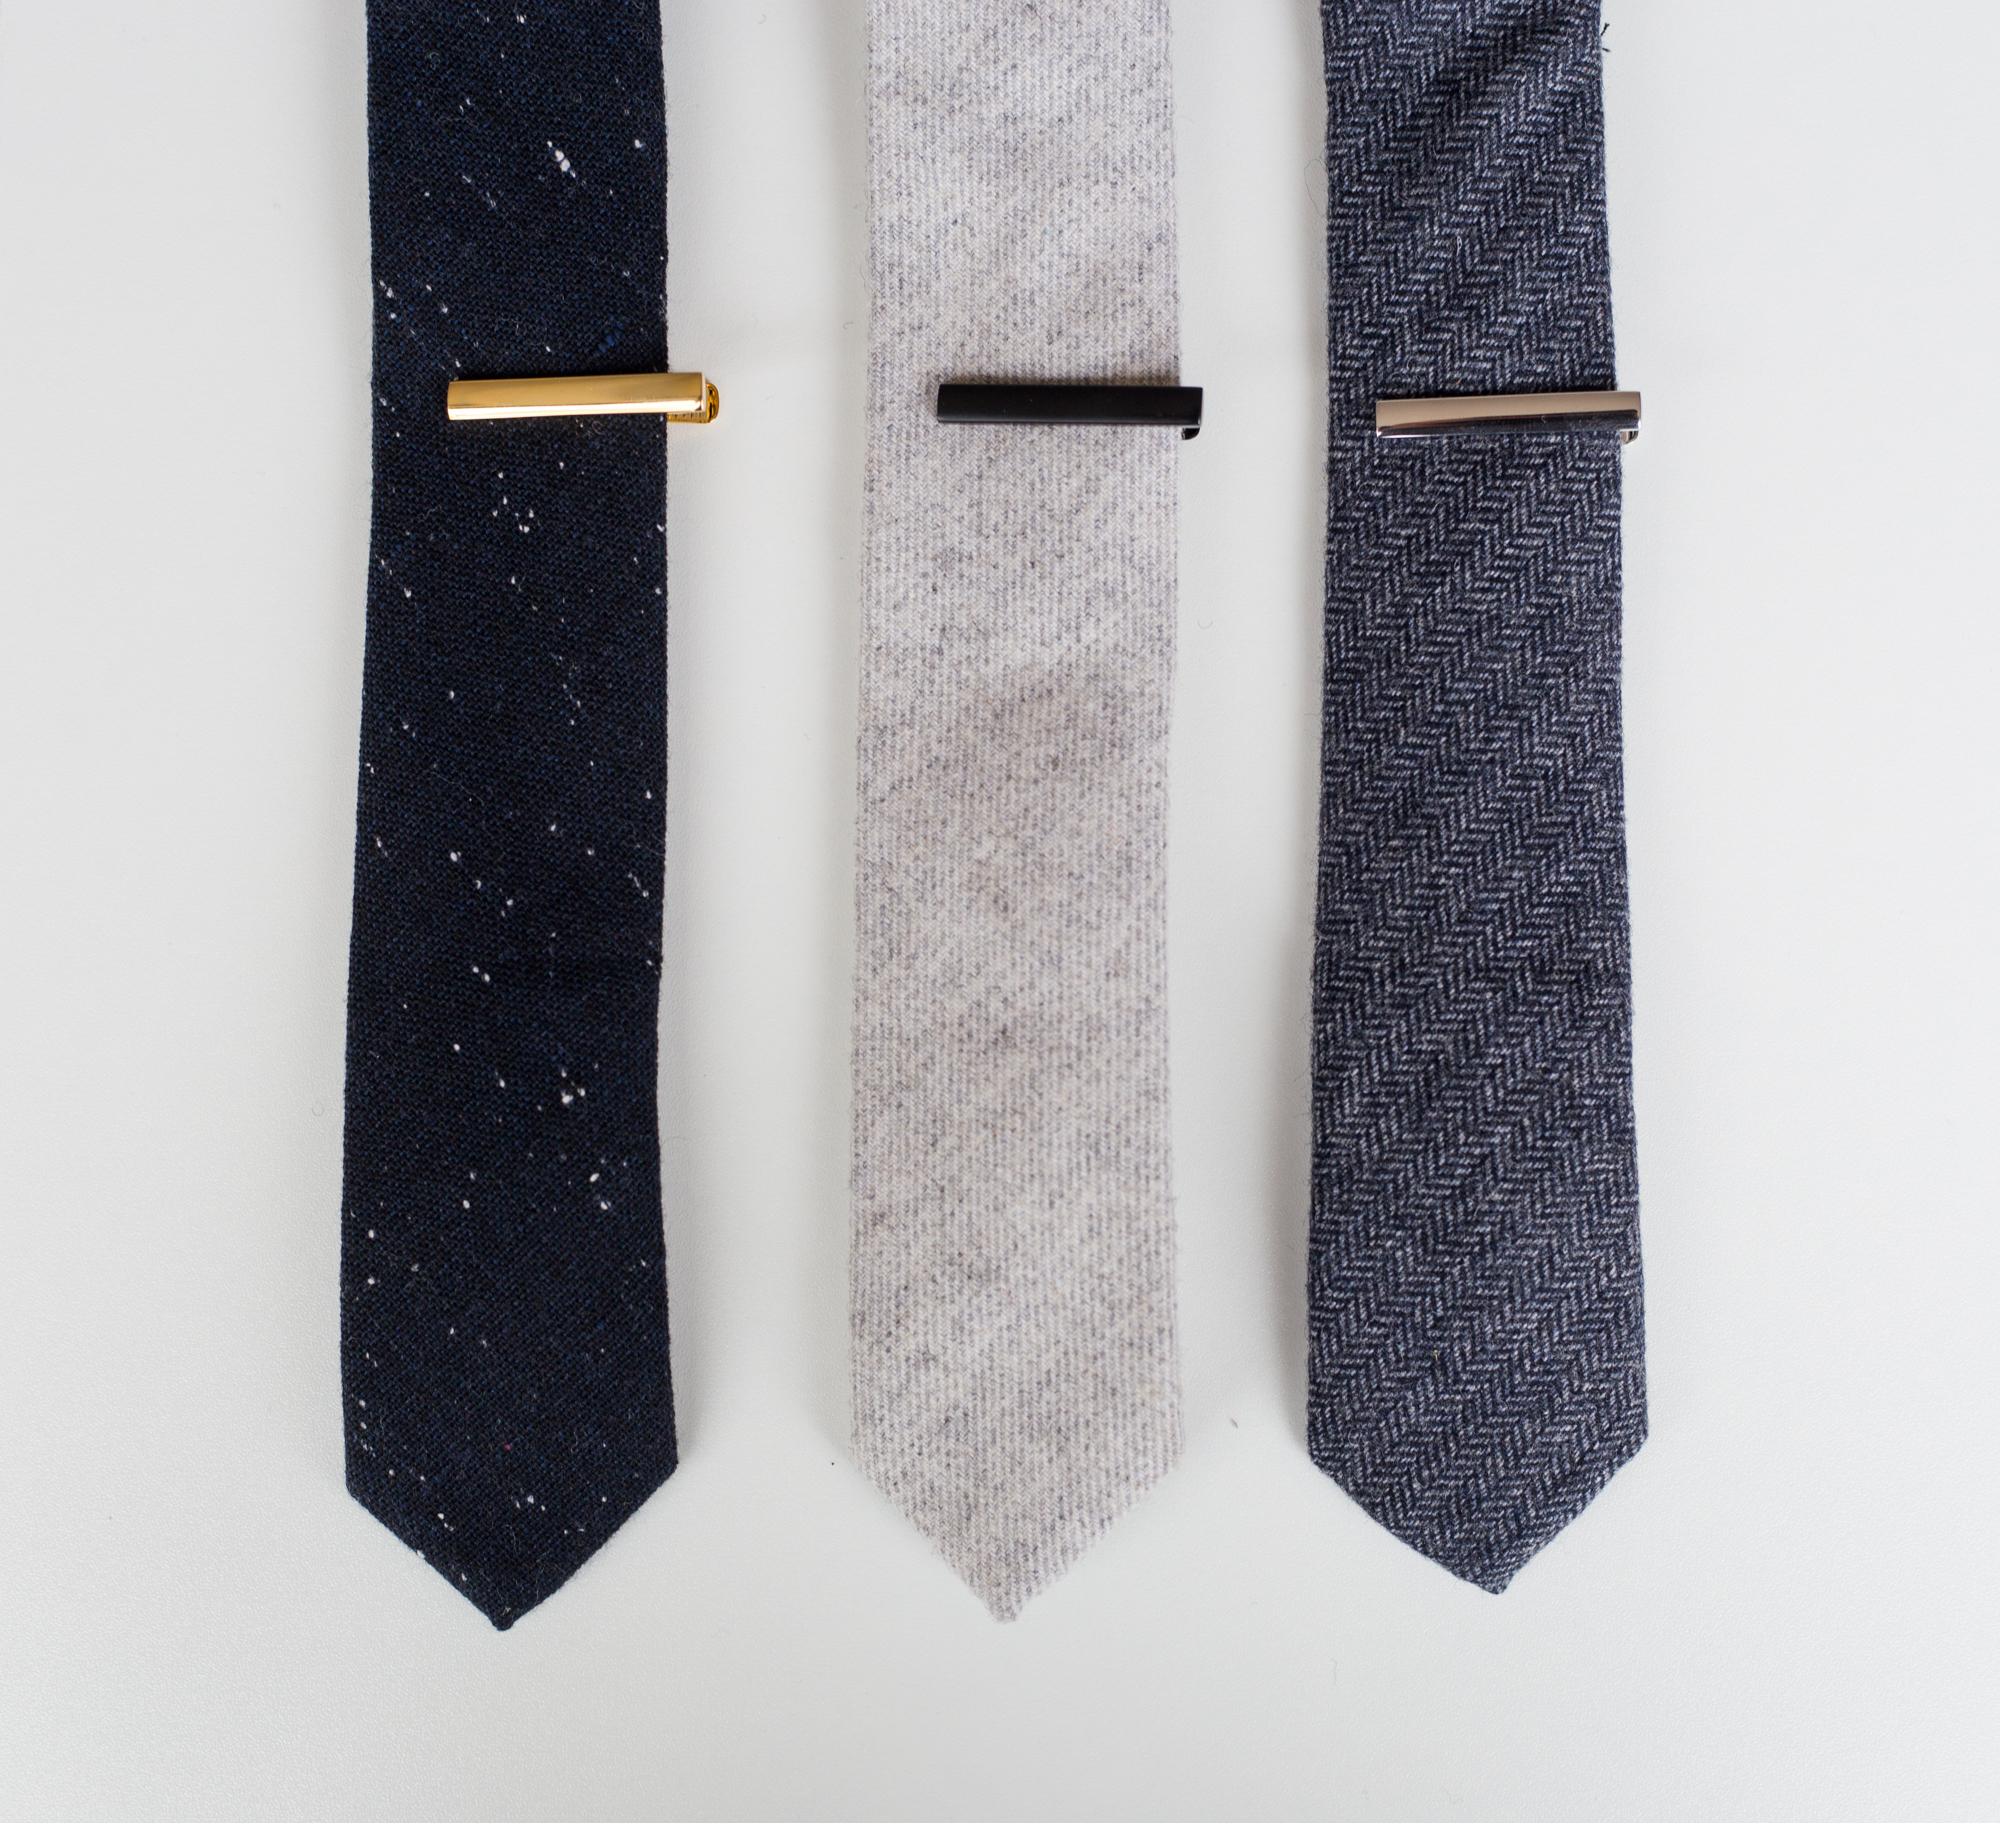 3-Pack of Tie Bars (End of Ties)